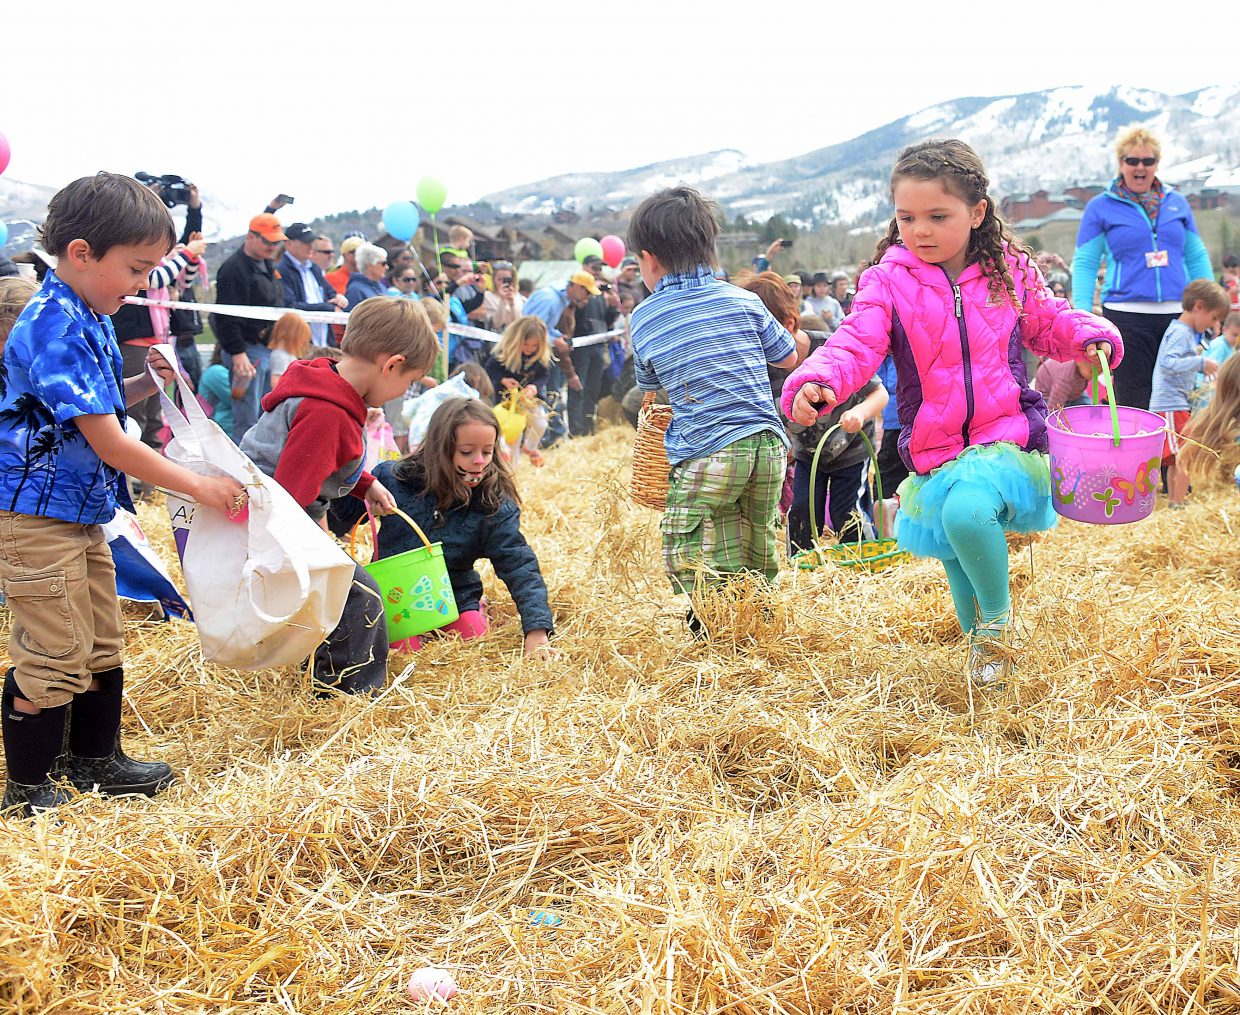 Peyton Carnes, 5, hunts for eggs Saturday at the Easter Eggstravaganza. The event runs from 10 a.m. to noon on Saturday at the Steamboat Springs Middle School for all ages.